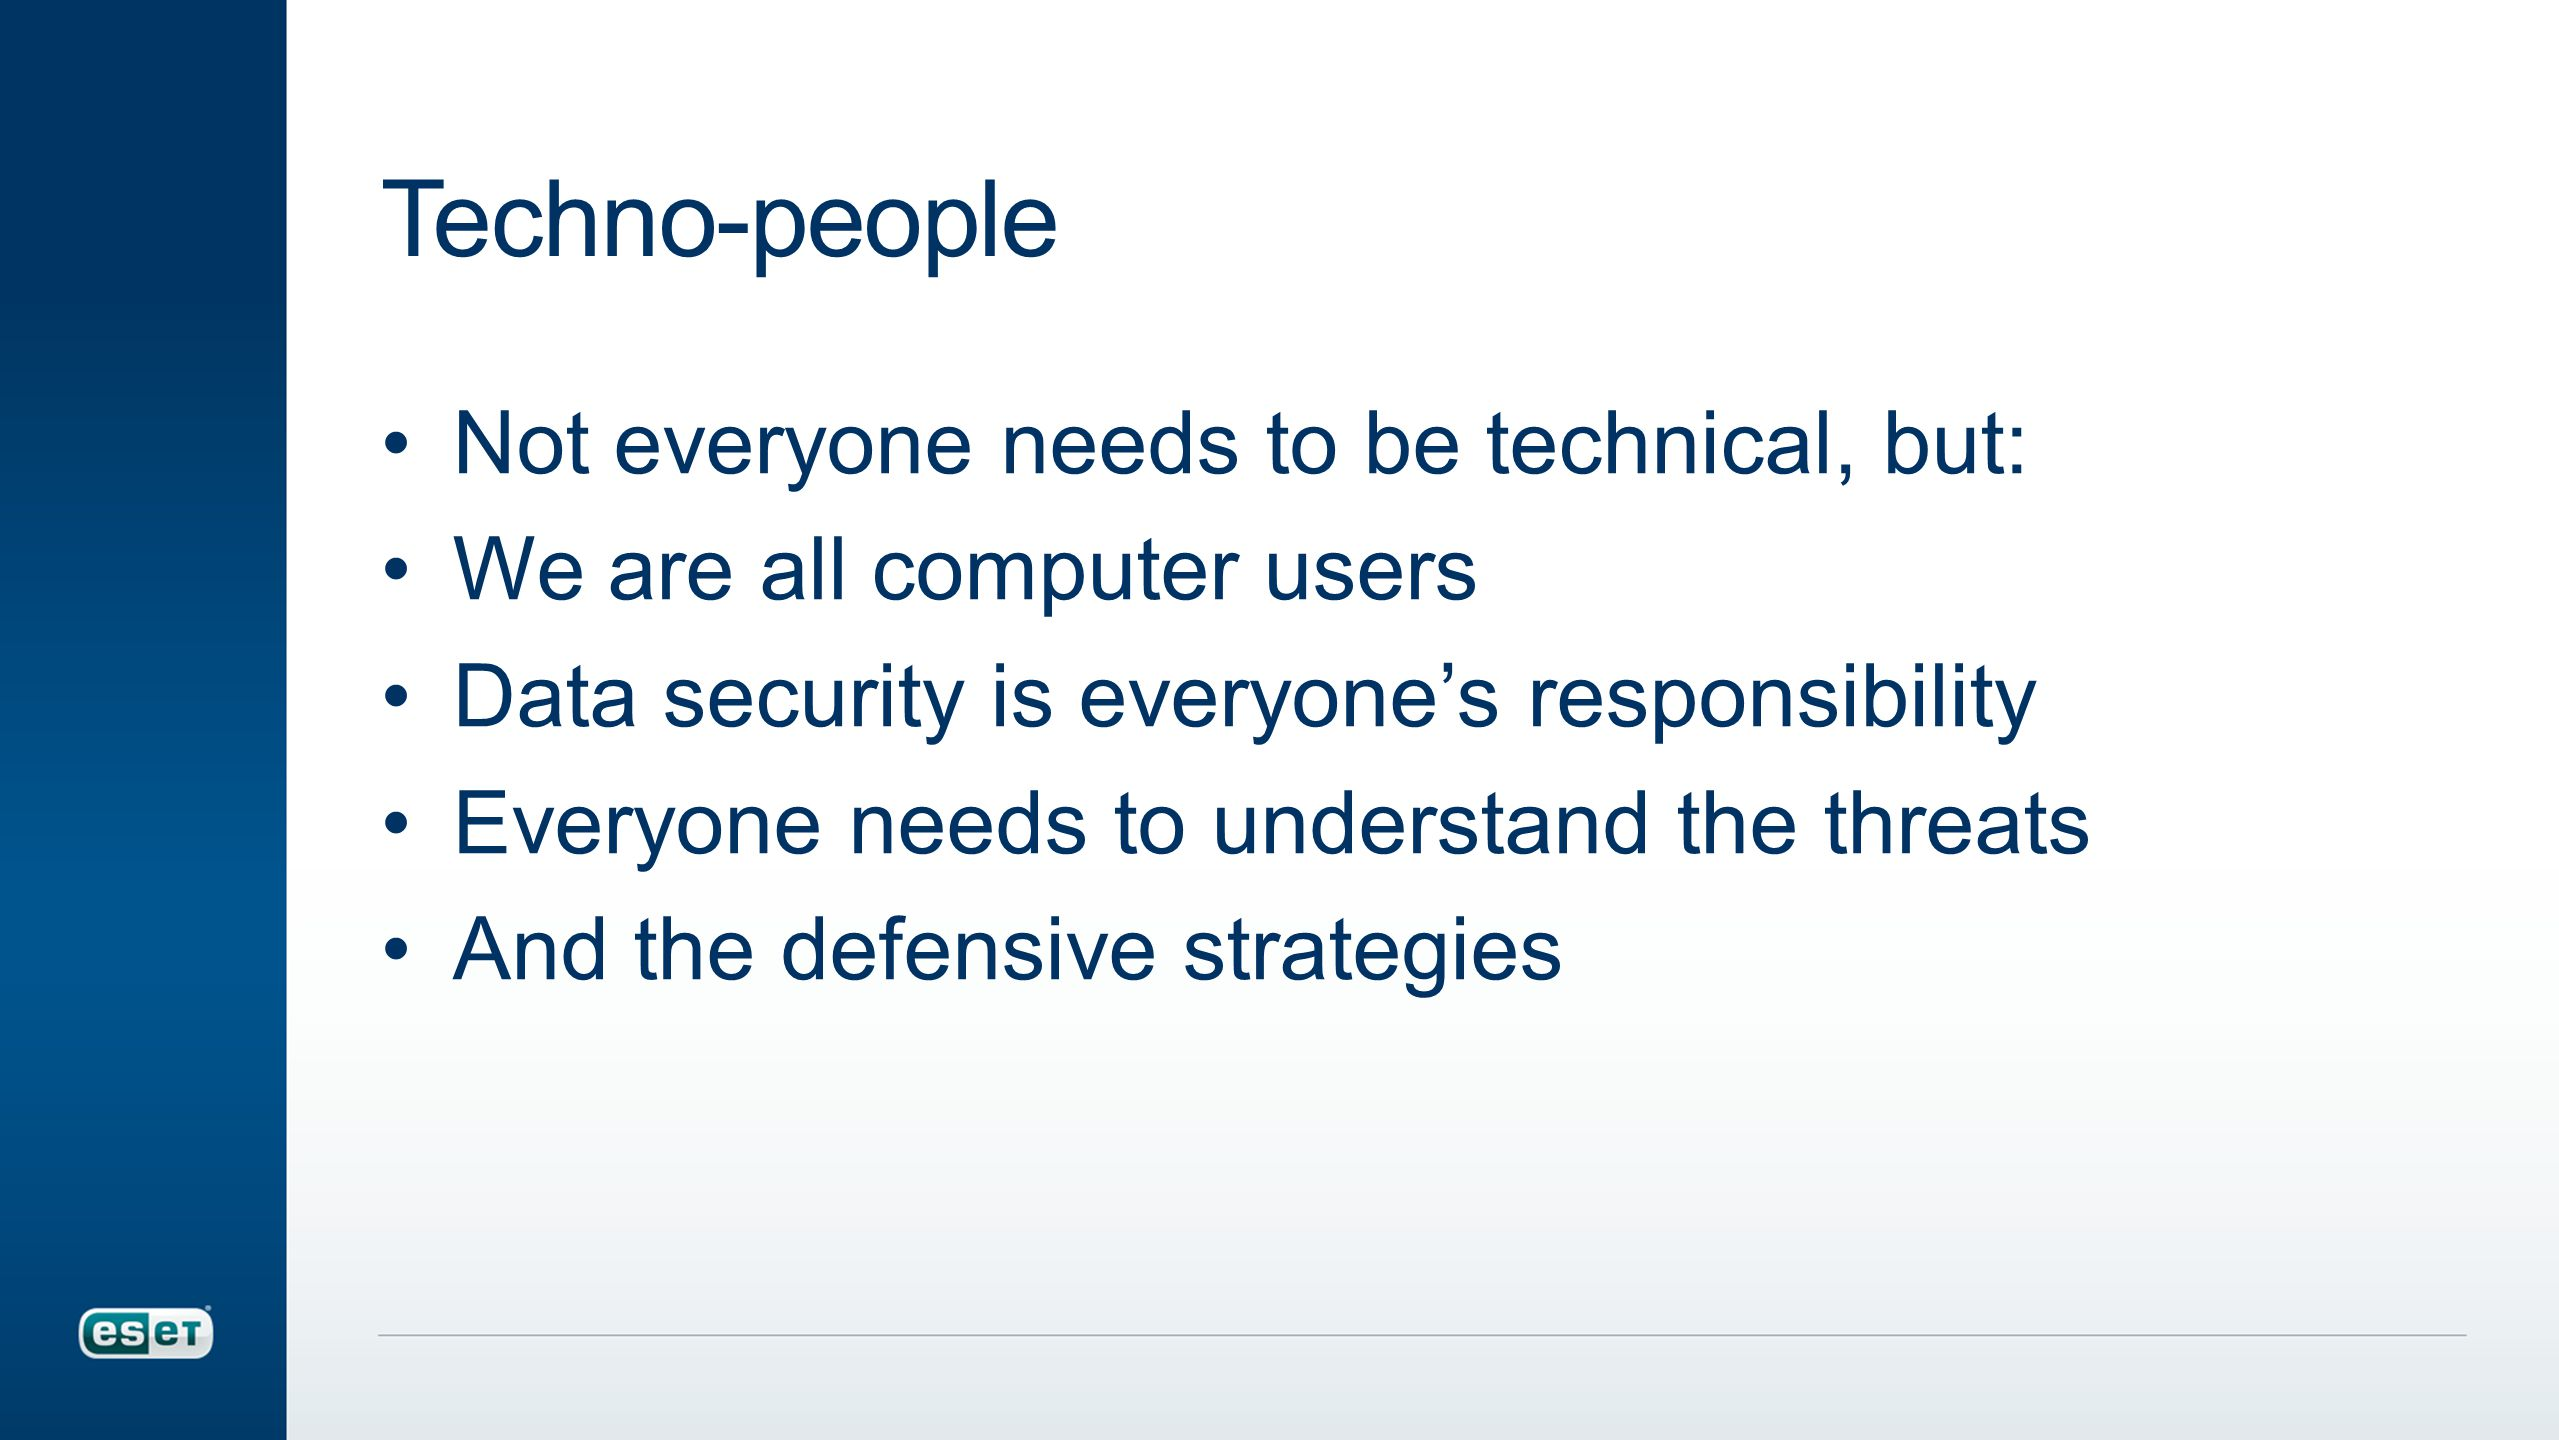 Techno-people Not everyone needs to be technical, but: We are all computer users Data security is everyone's responsibility Everyone needs to understand the threats And the defensive strategies